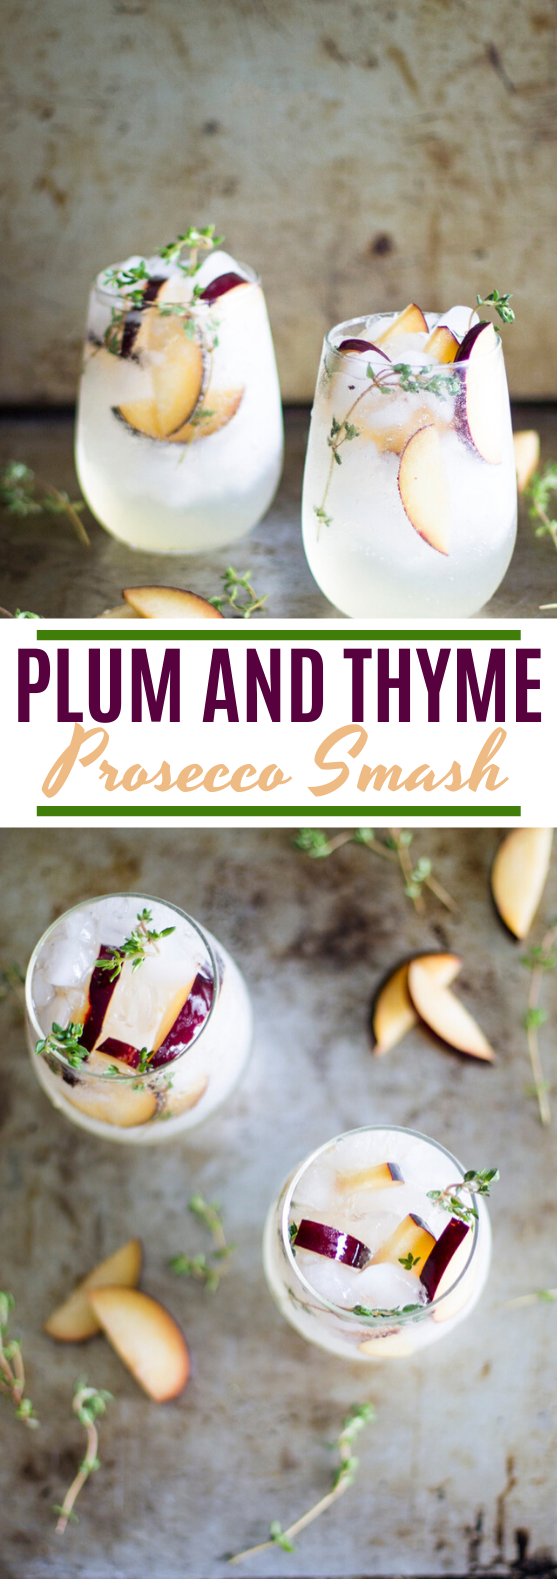 Plum and Thyme Prosecco Smash #drinks #cocktails #alcohol #beverages #refreshing